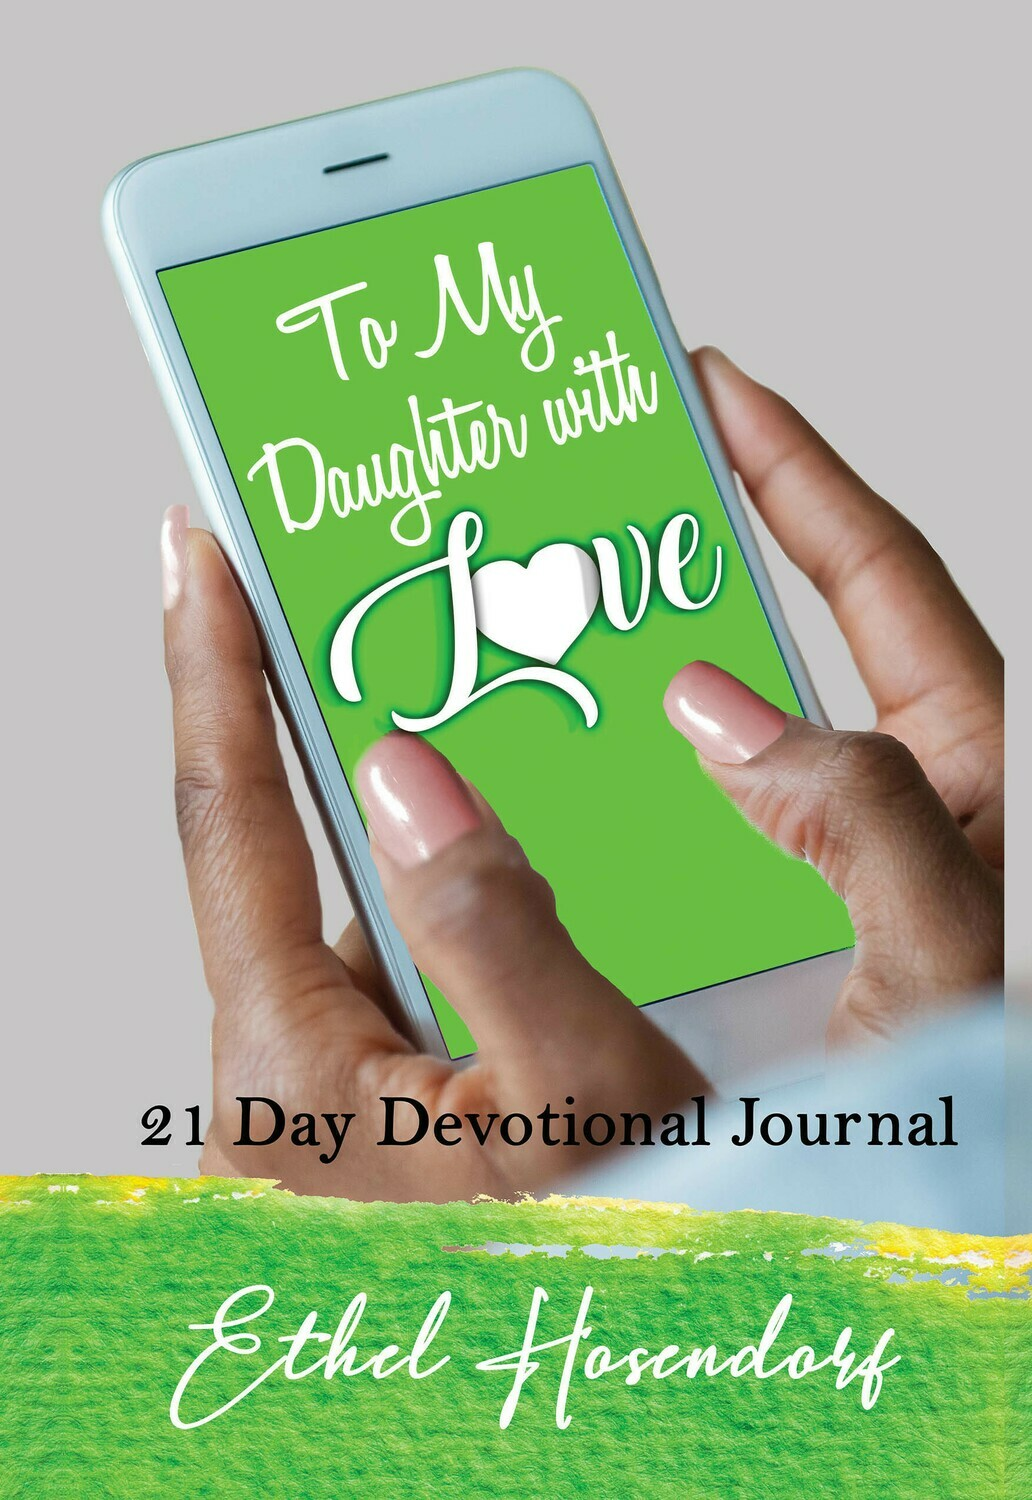 To My Daughter with Love by Ethel Hosendorf